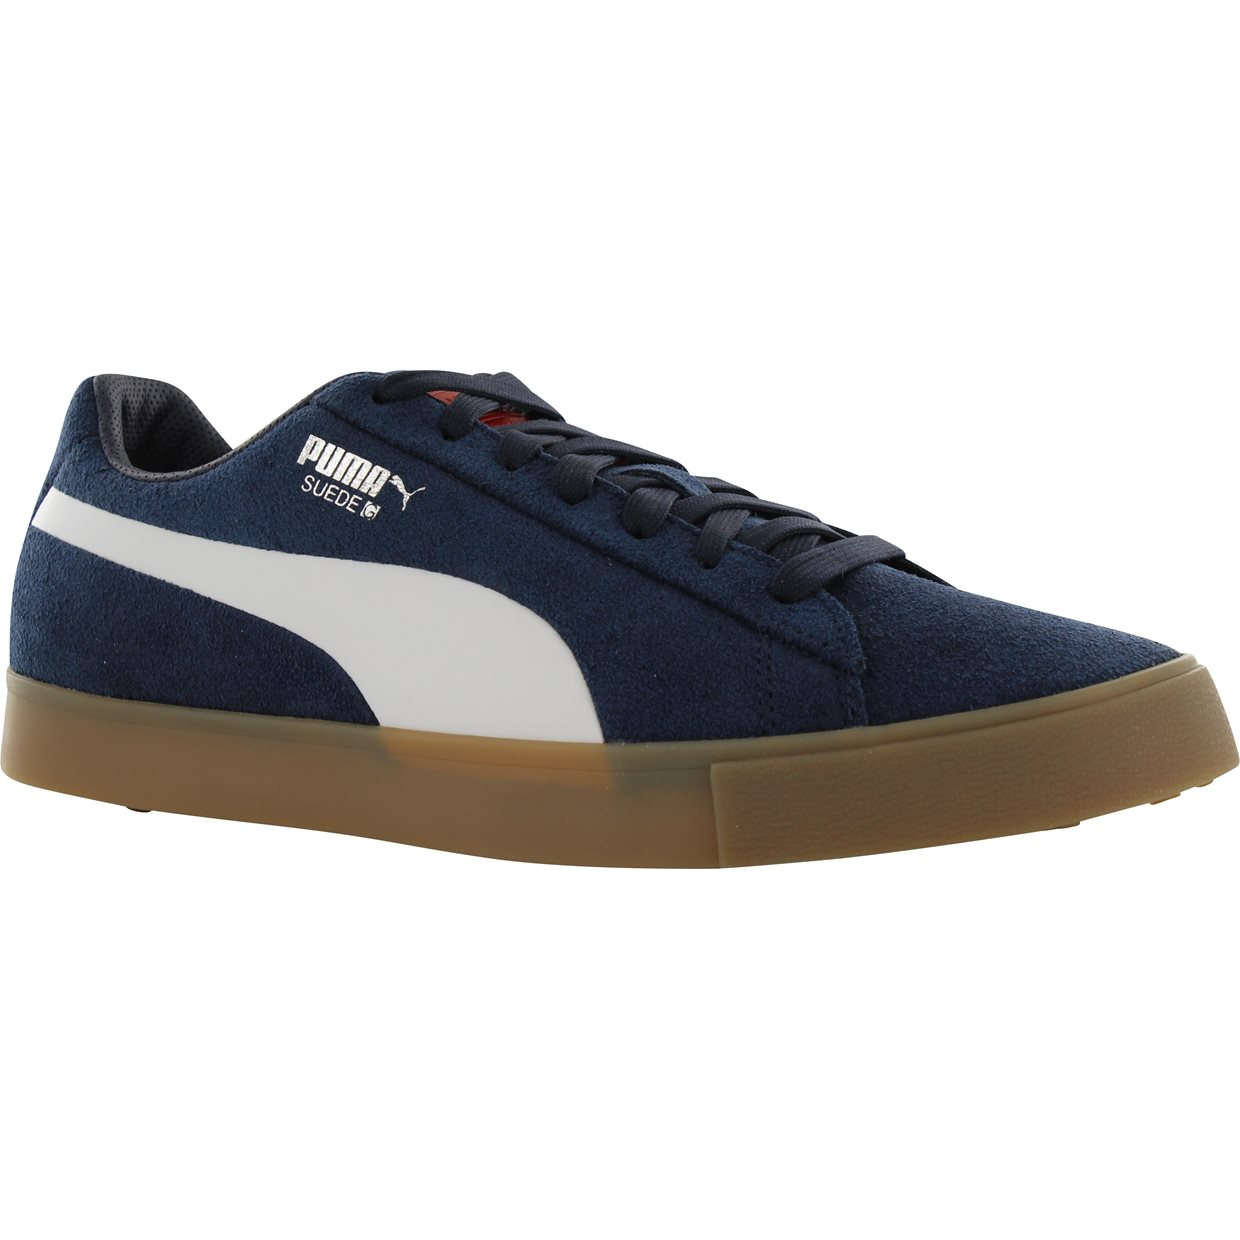 ce1bdb878a88 Puma Malbon Golf Suede G Spikeless Shoes. Drag 360 Left or Right to View.  Alternate Product Image View 1 ...